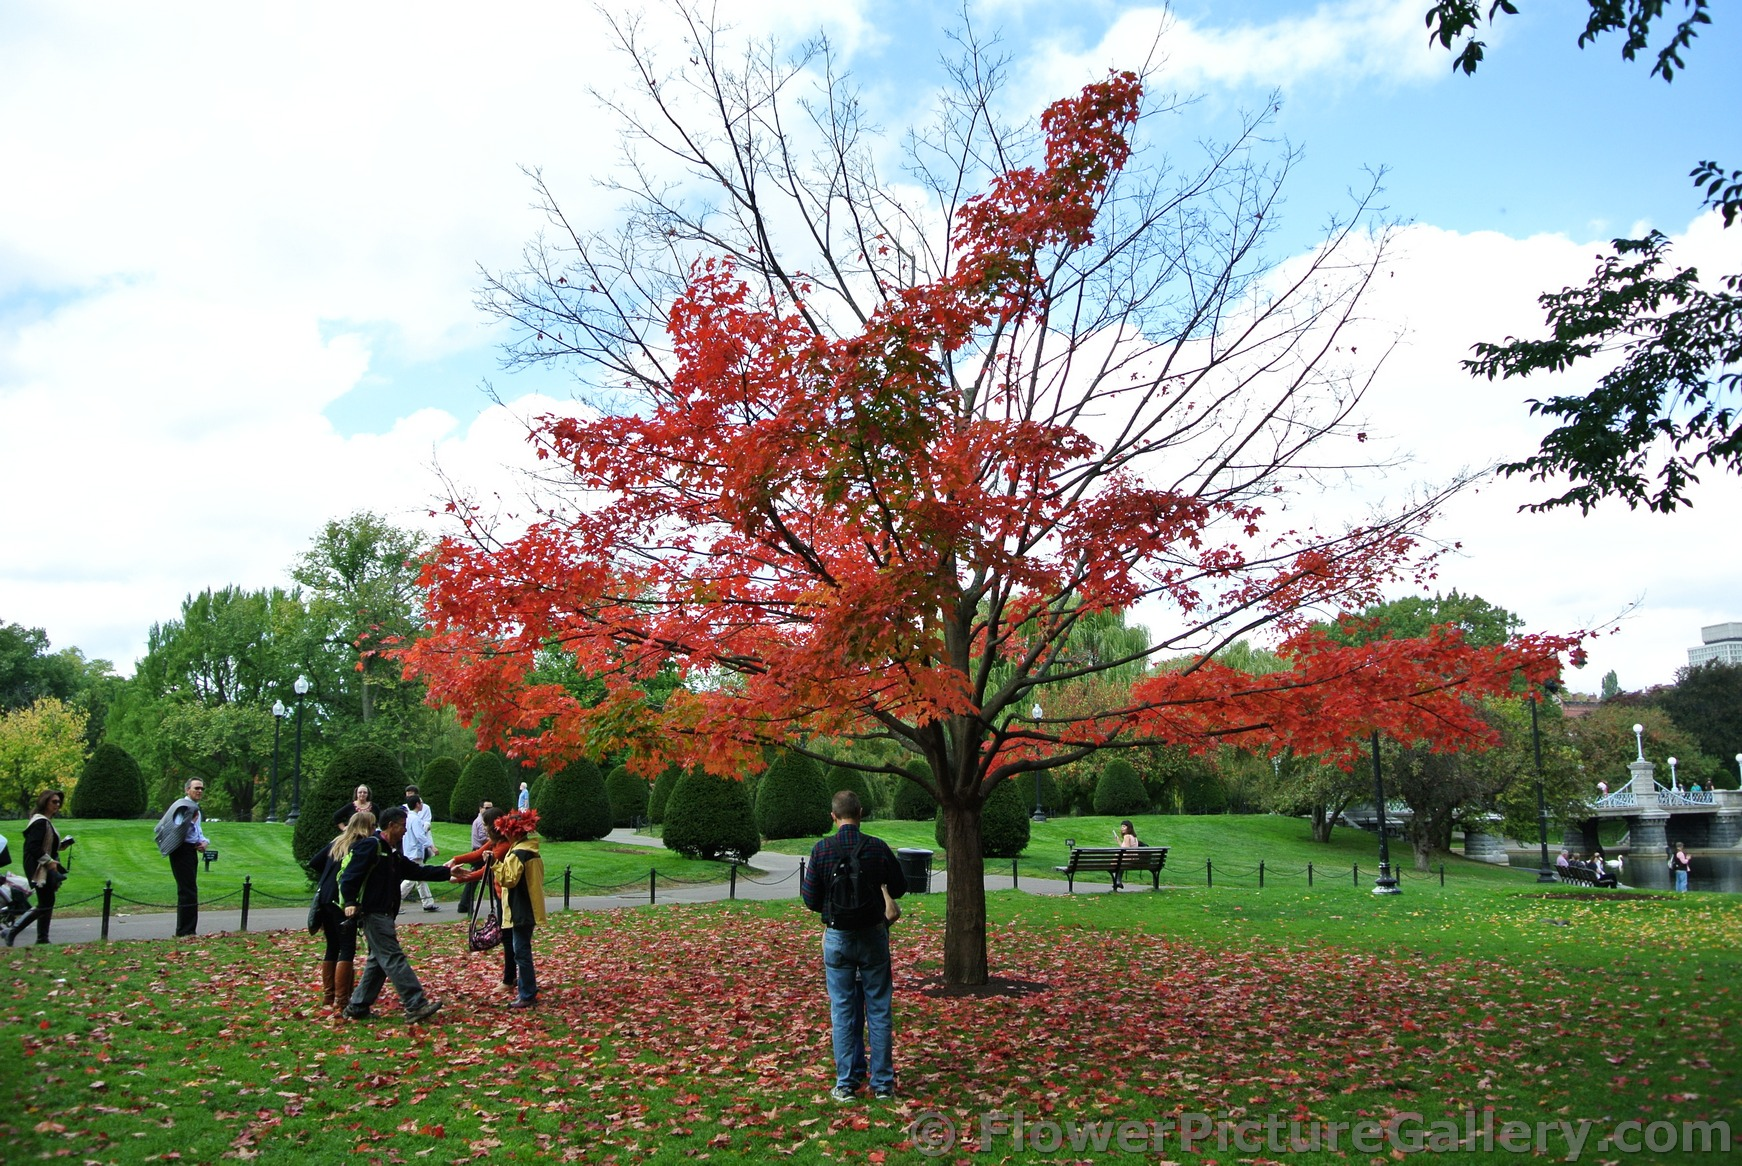 Maple tree with bright red leaves at Boston Public Garden during autumn.jpg